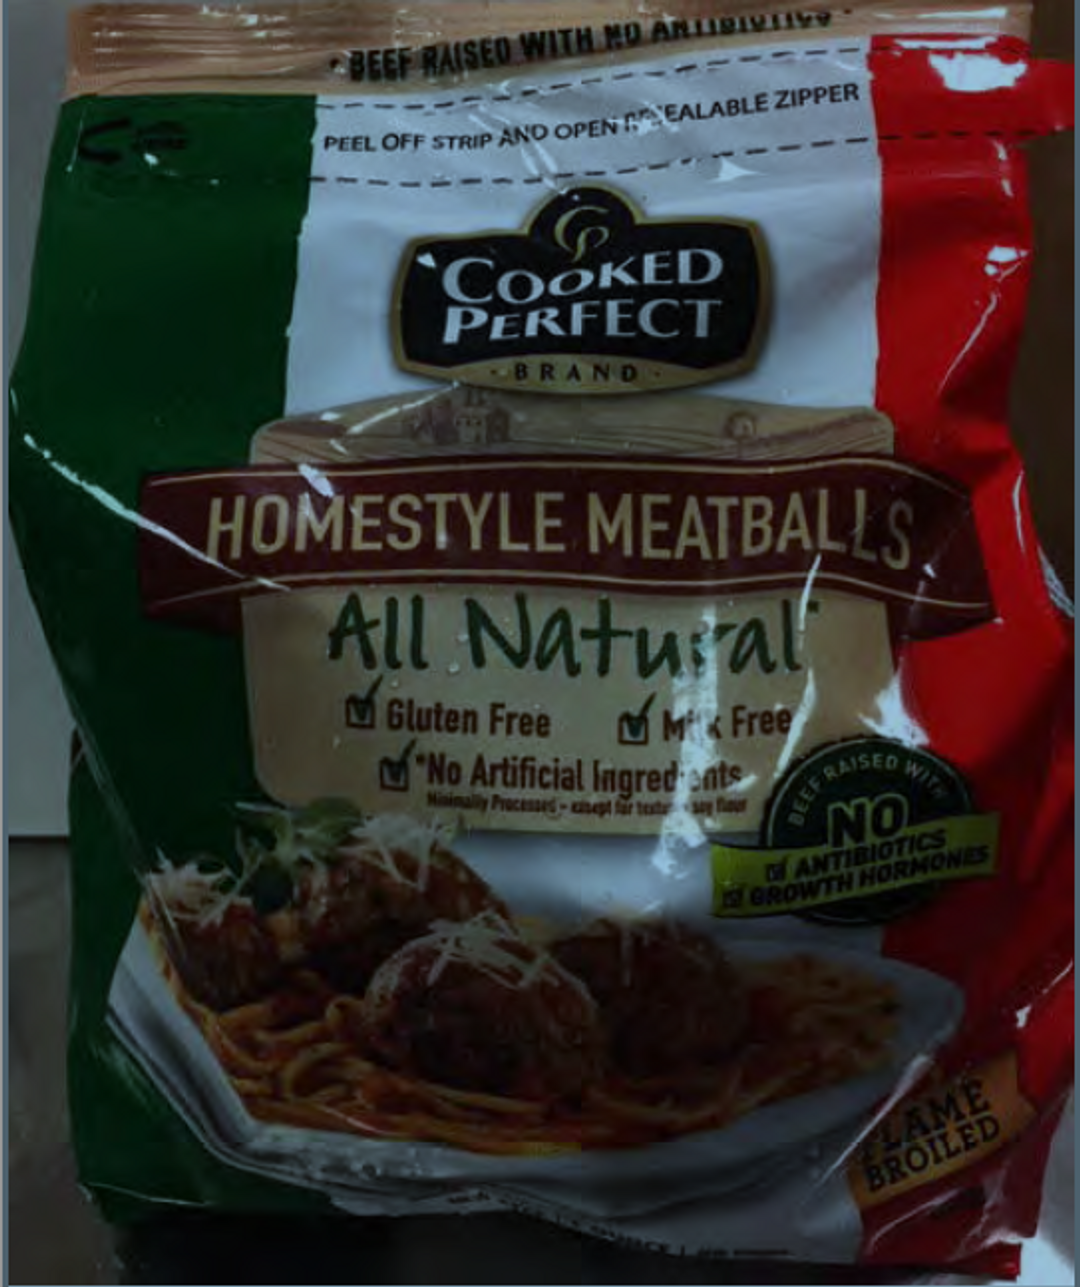 More than 26 tons of frozen meatballs recalled